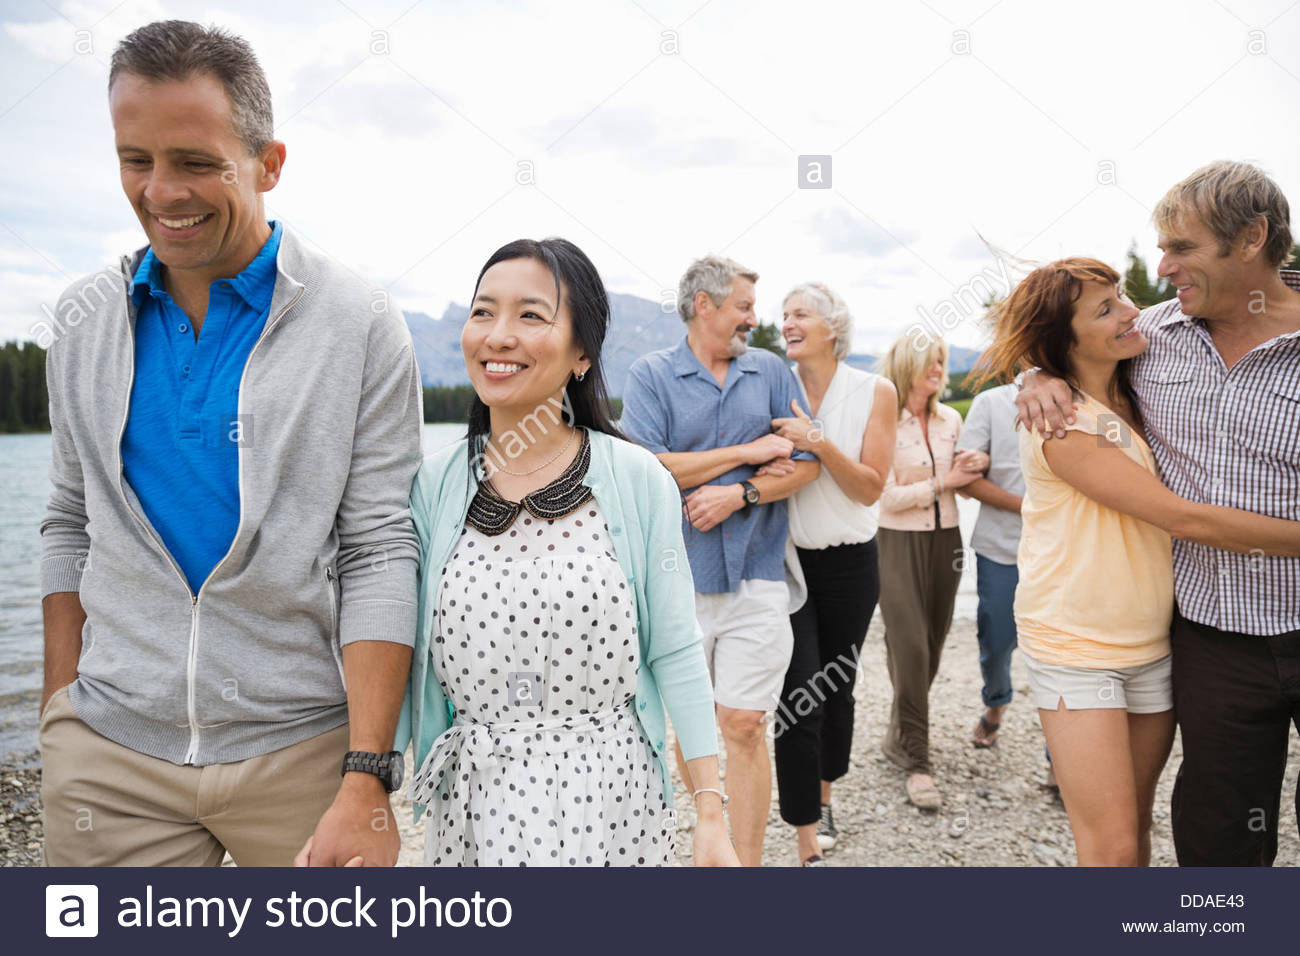 Affectionate couples walking along the beach - Stock Image